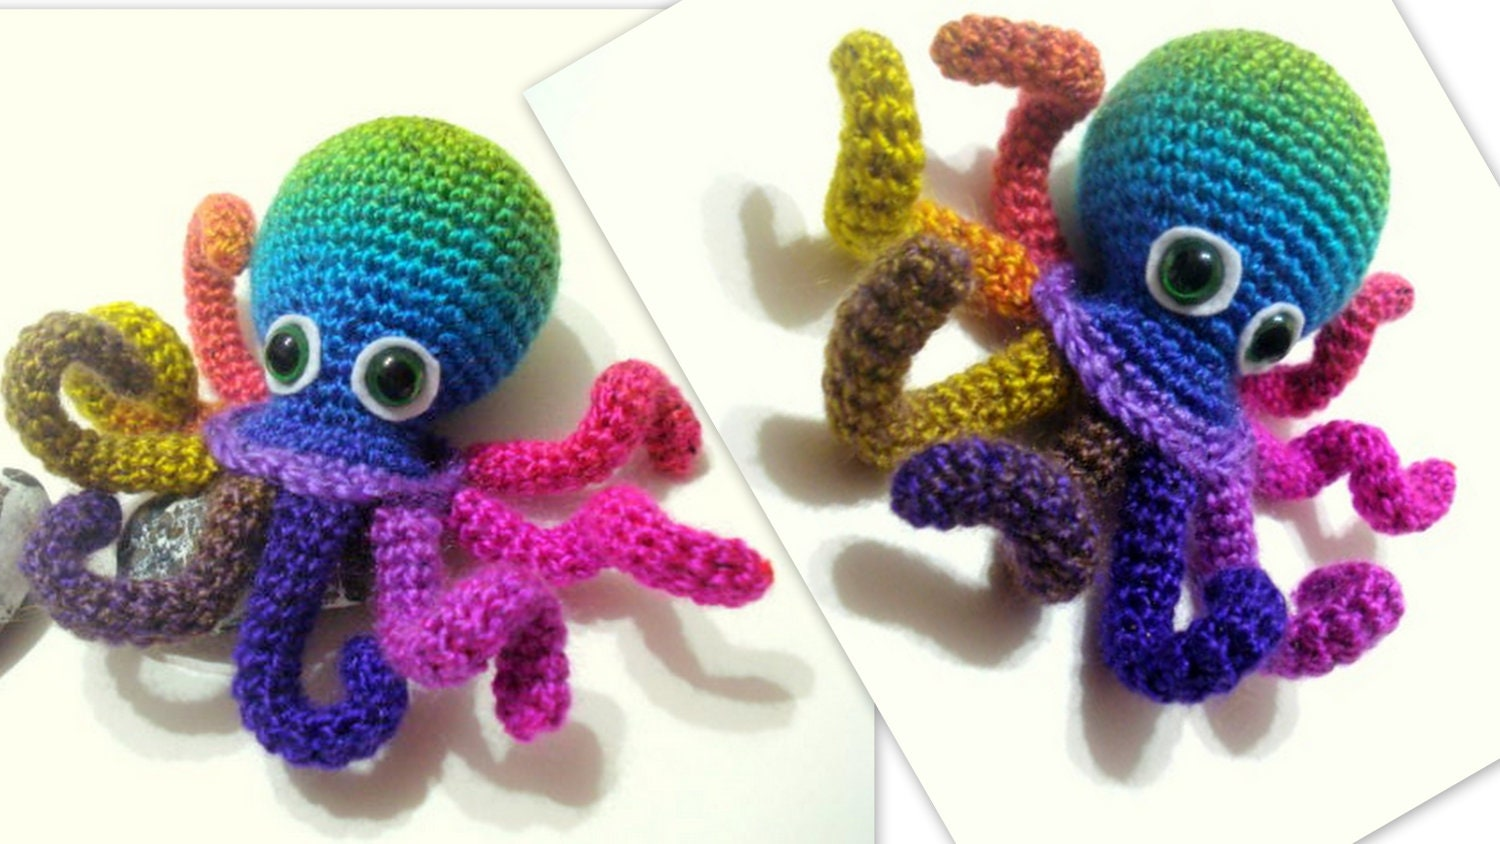 Crochet Tutorial Octopus Amigurumi Crocheted Octopus  730d1dab6022